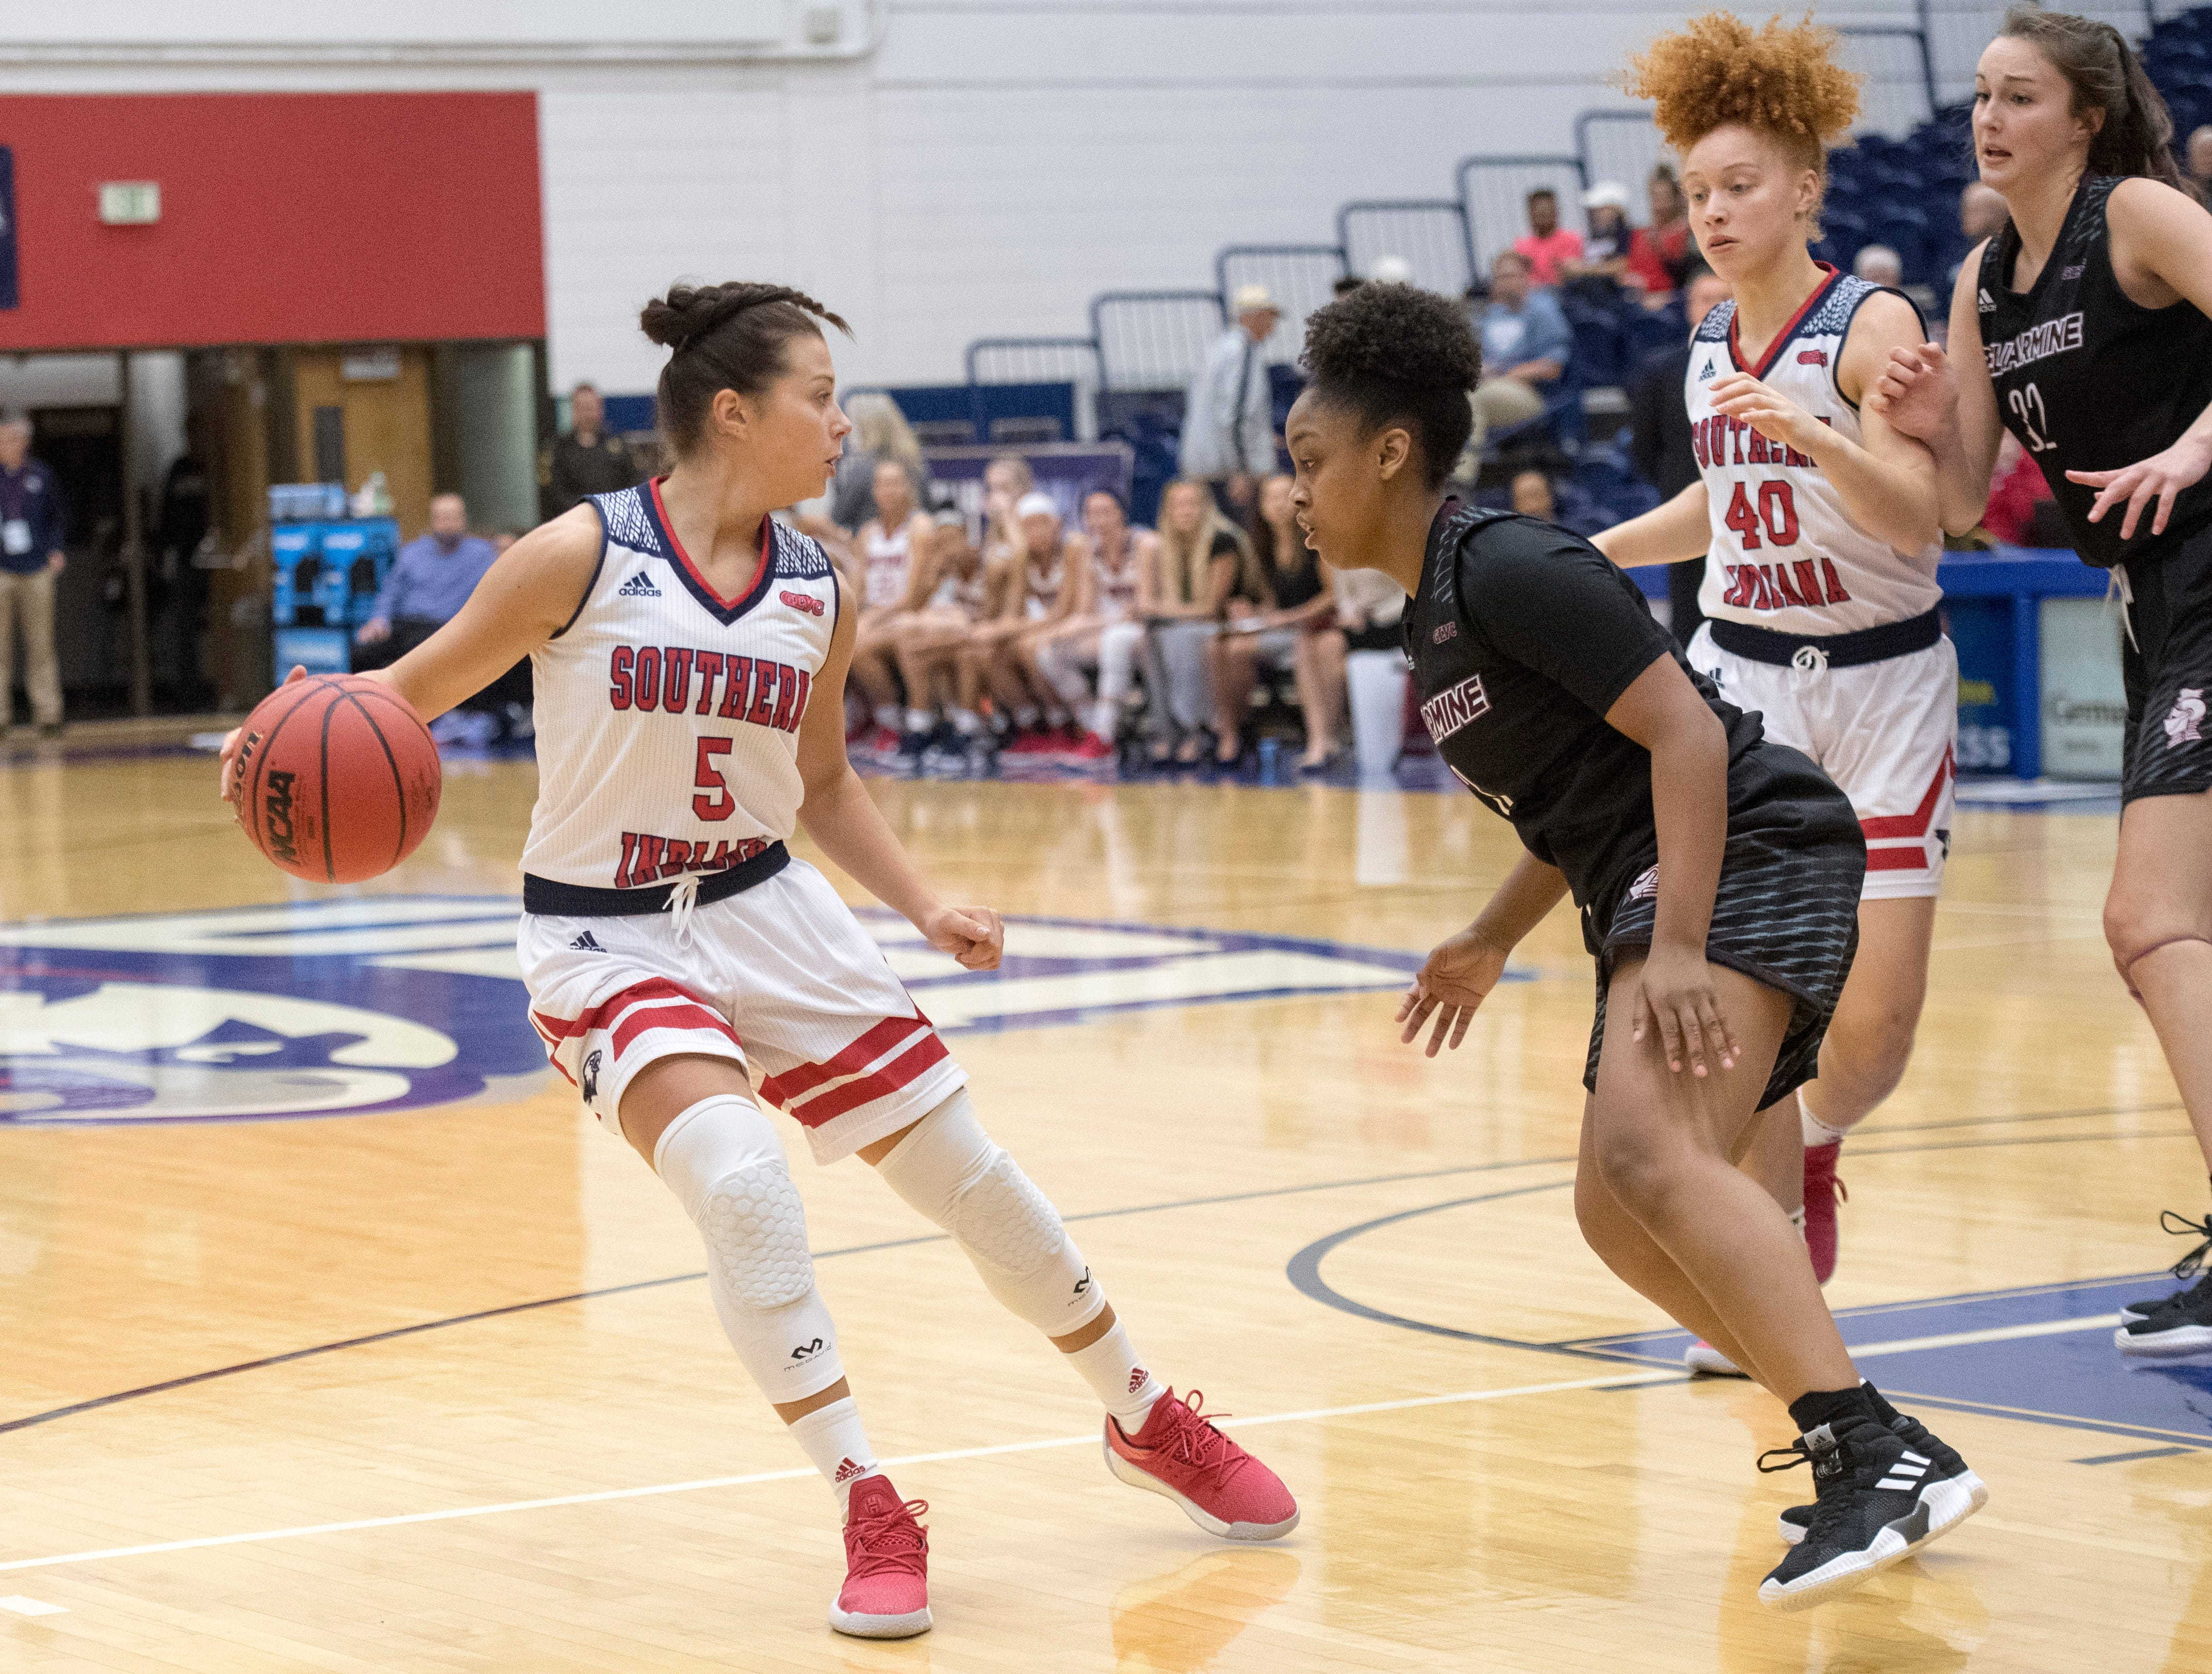 USI's Milana Matias (5) is guarded by Bellarmine's Breia Torrens (3) during the USI vs Bellarmine game at the PAC Saturday, Dec. 1, 2018.